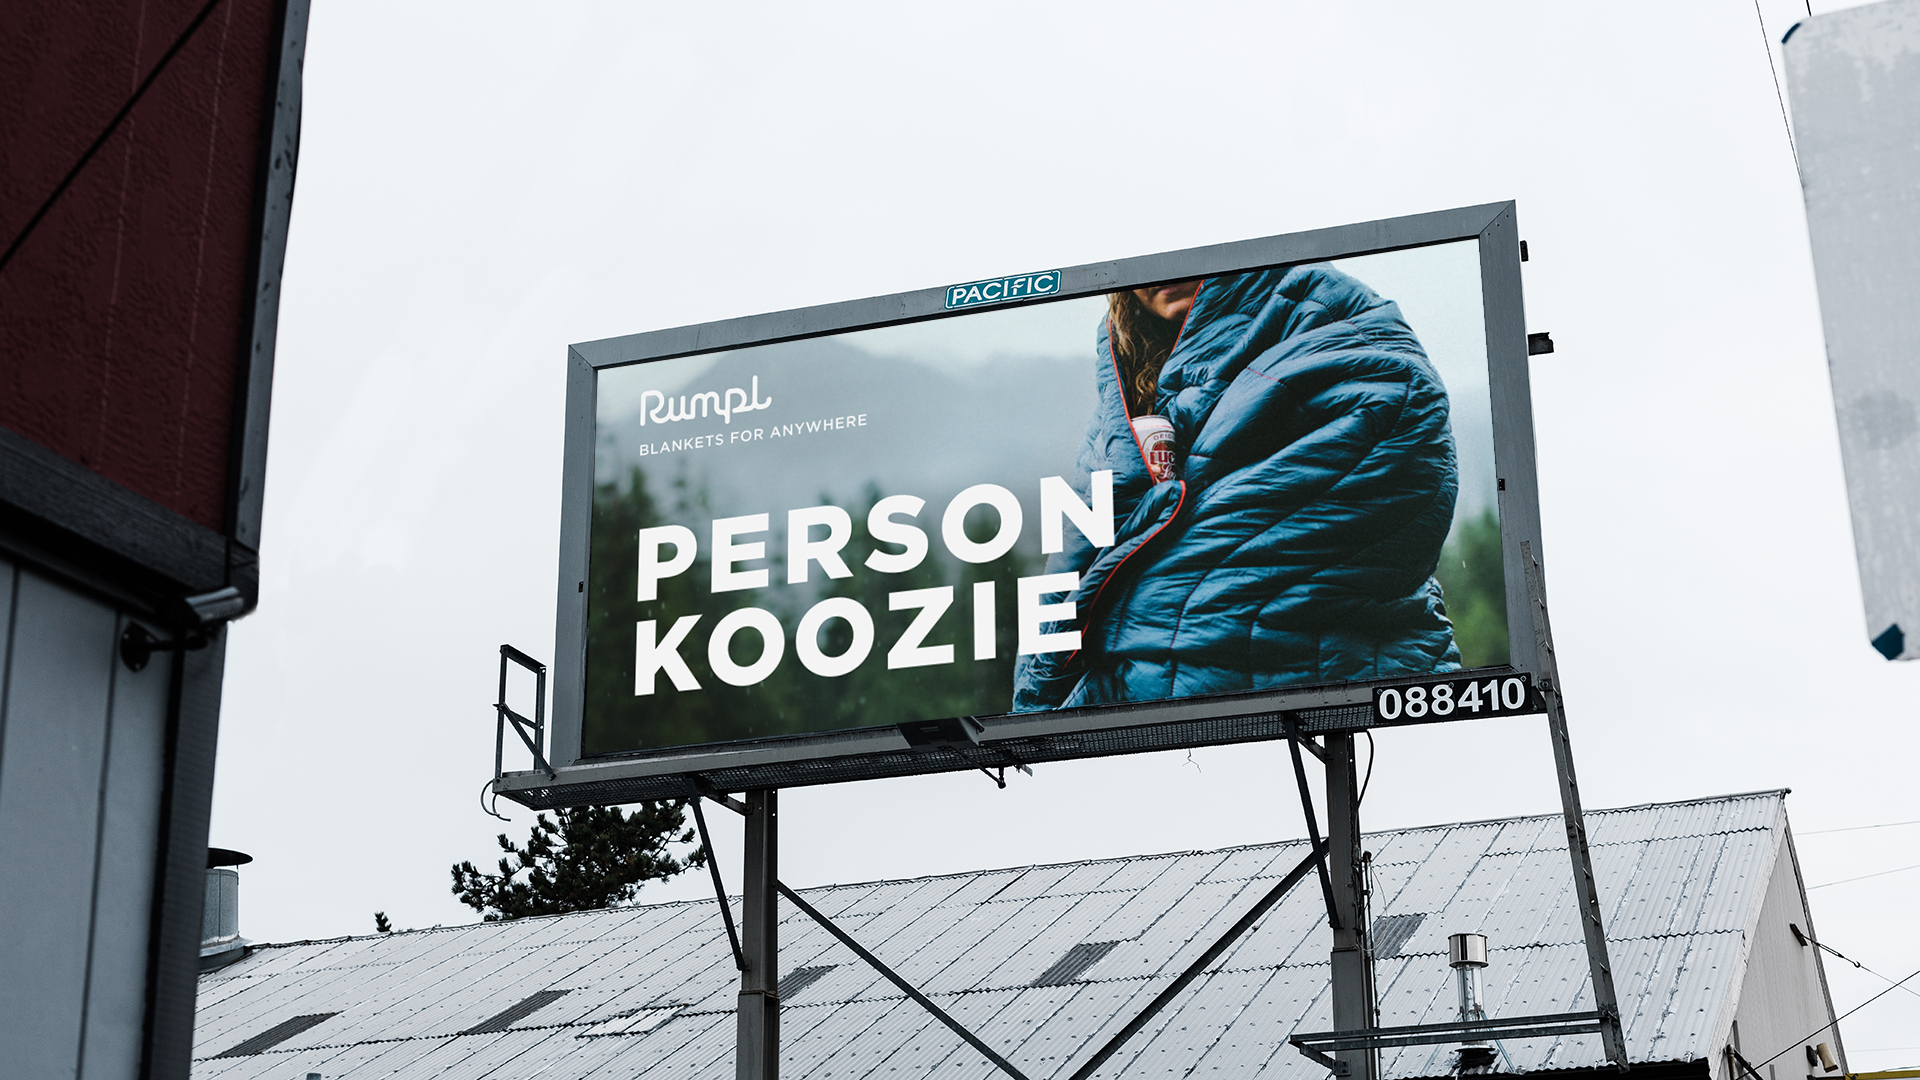 Billboard campaign for a modern blanket that's somewhere between a sleeping bag and a puffy jacket. (Writer)